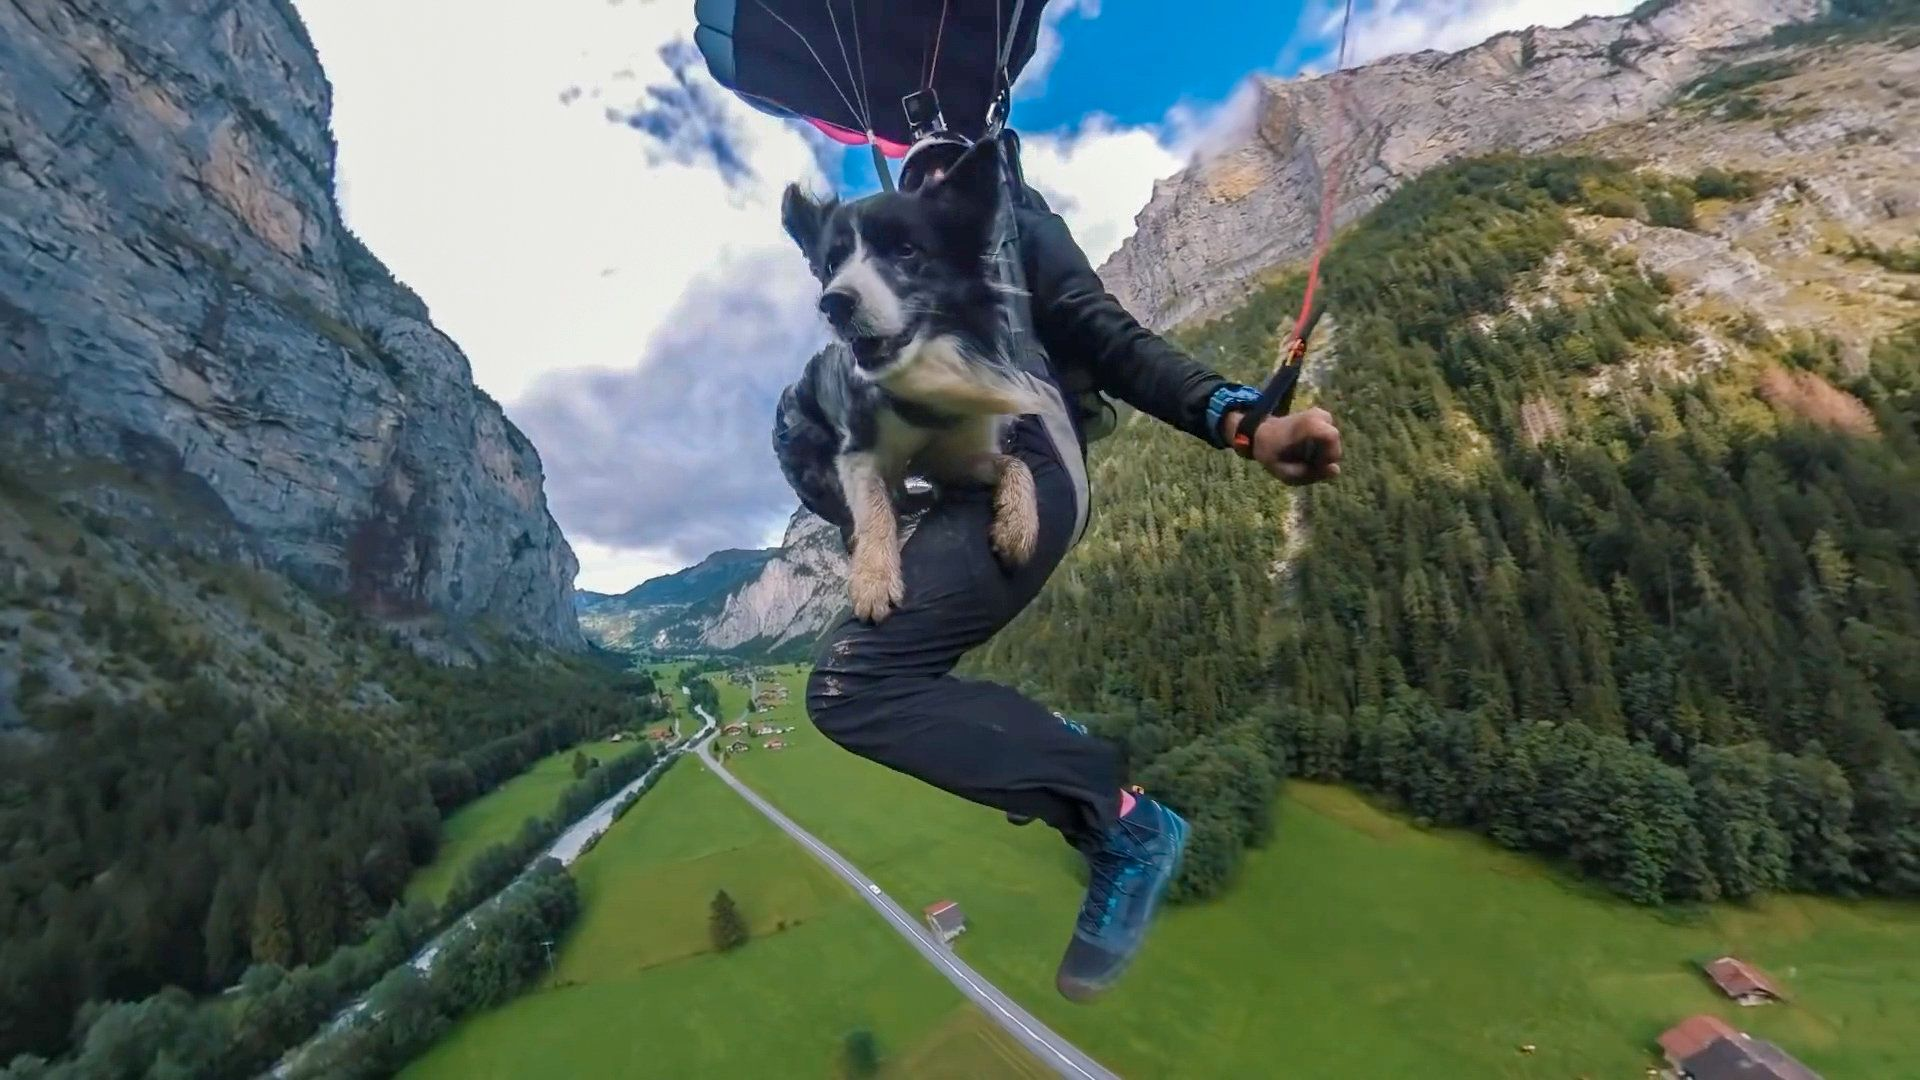 Dog leaps off 2,000foot cliff with owner, parachutes to